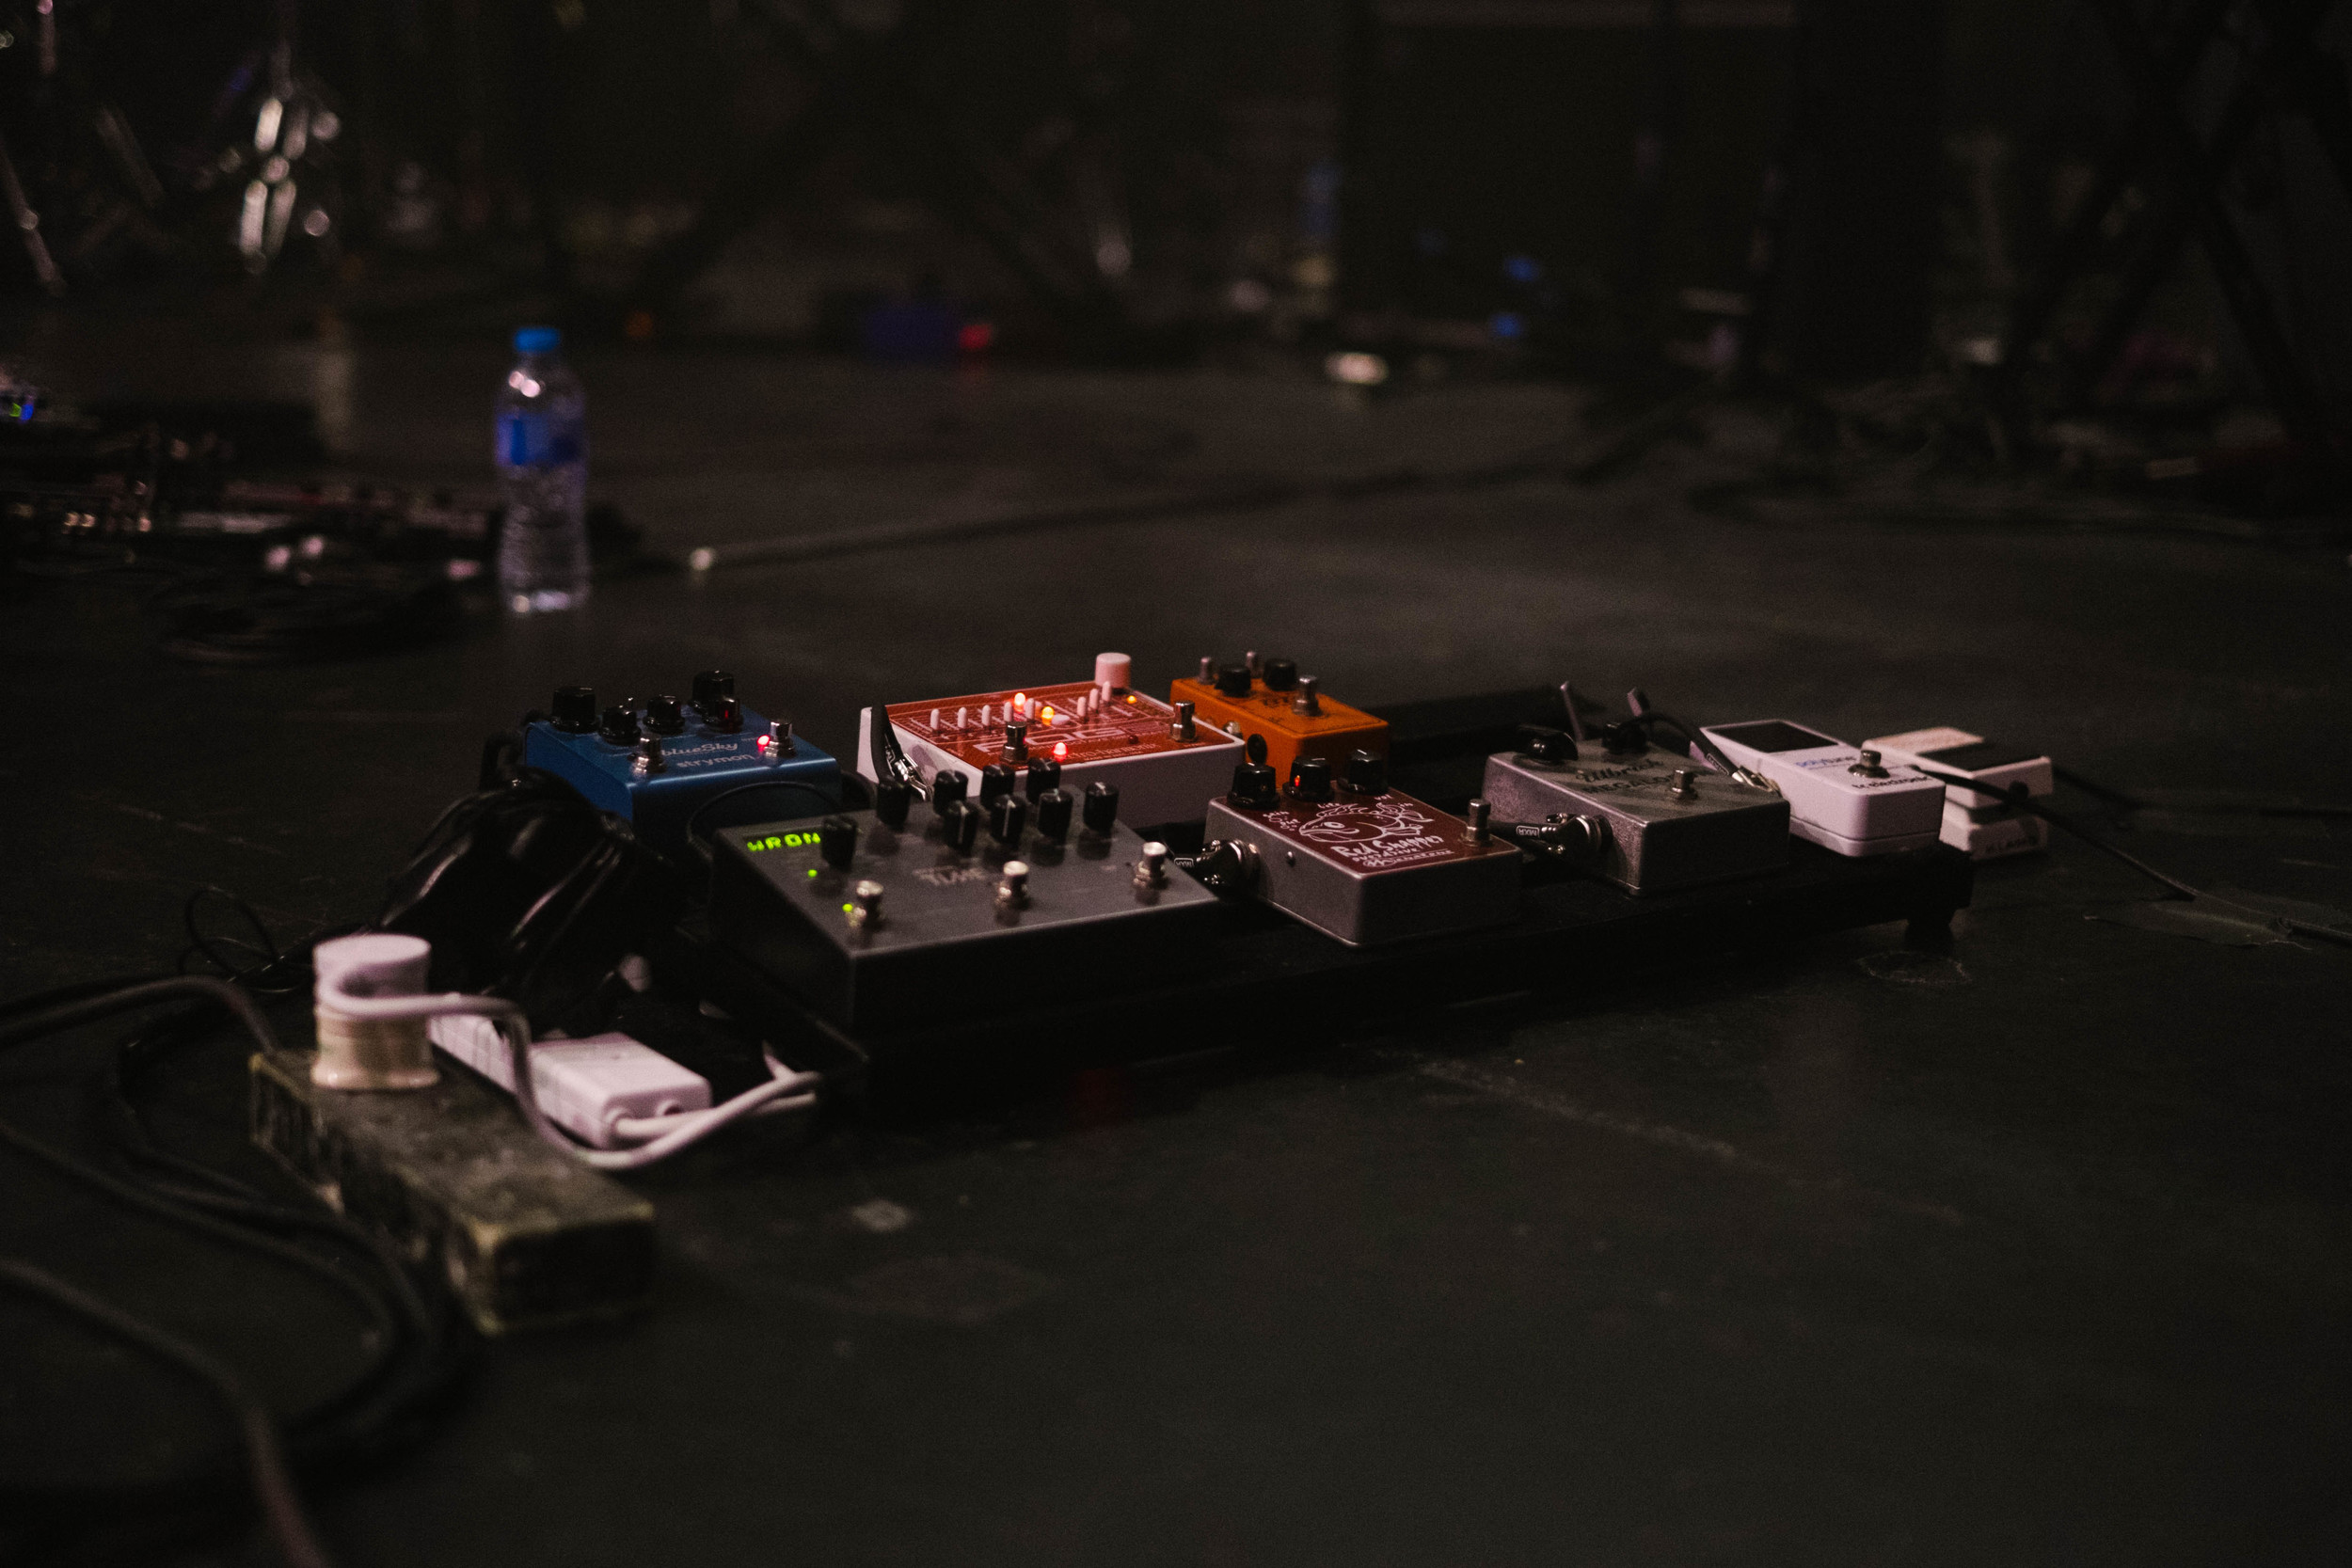 Equipments at Matt Corby's show in Electric Brixton, London, 2015